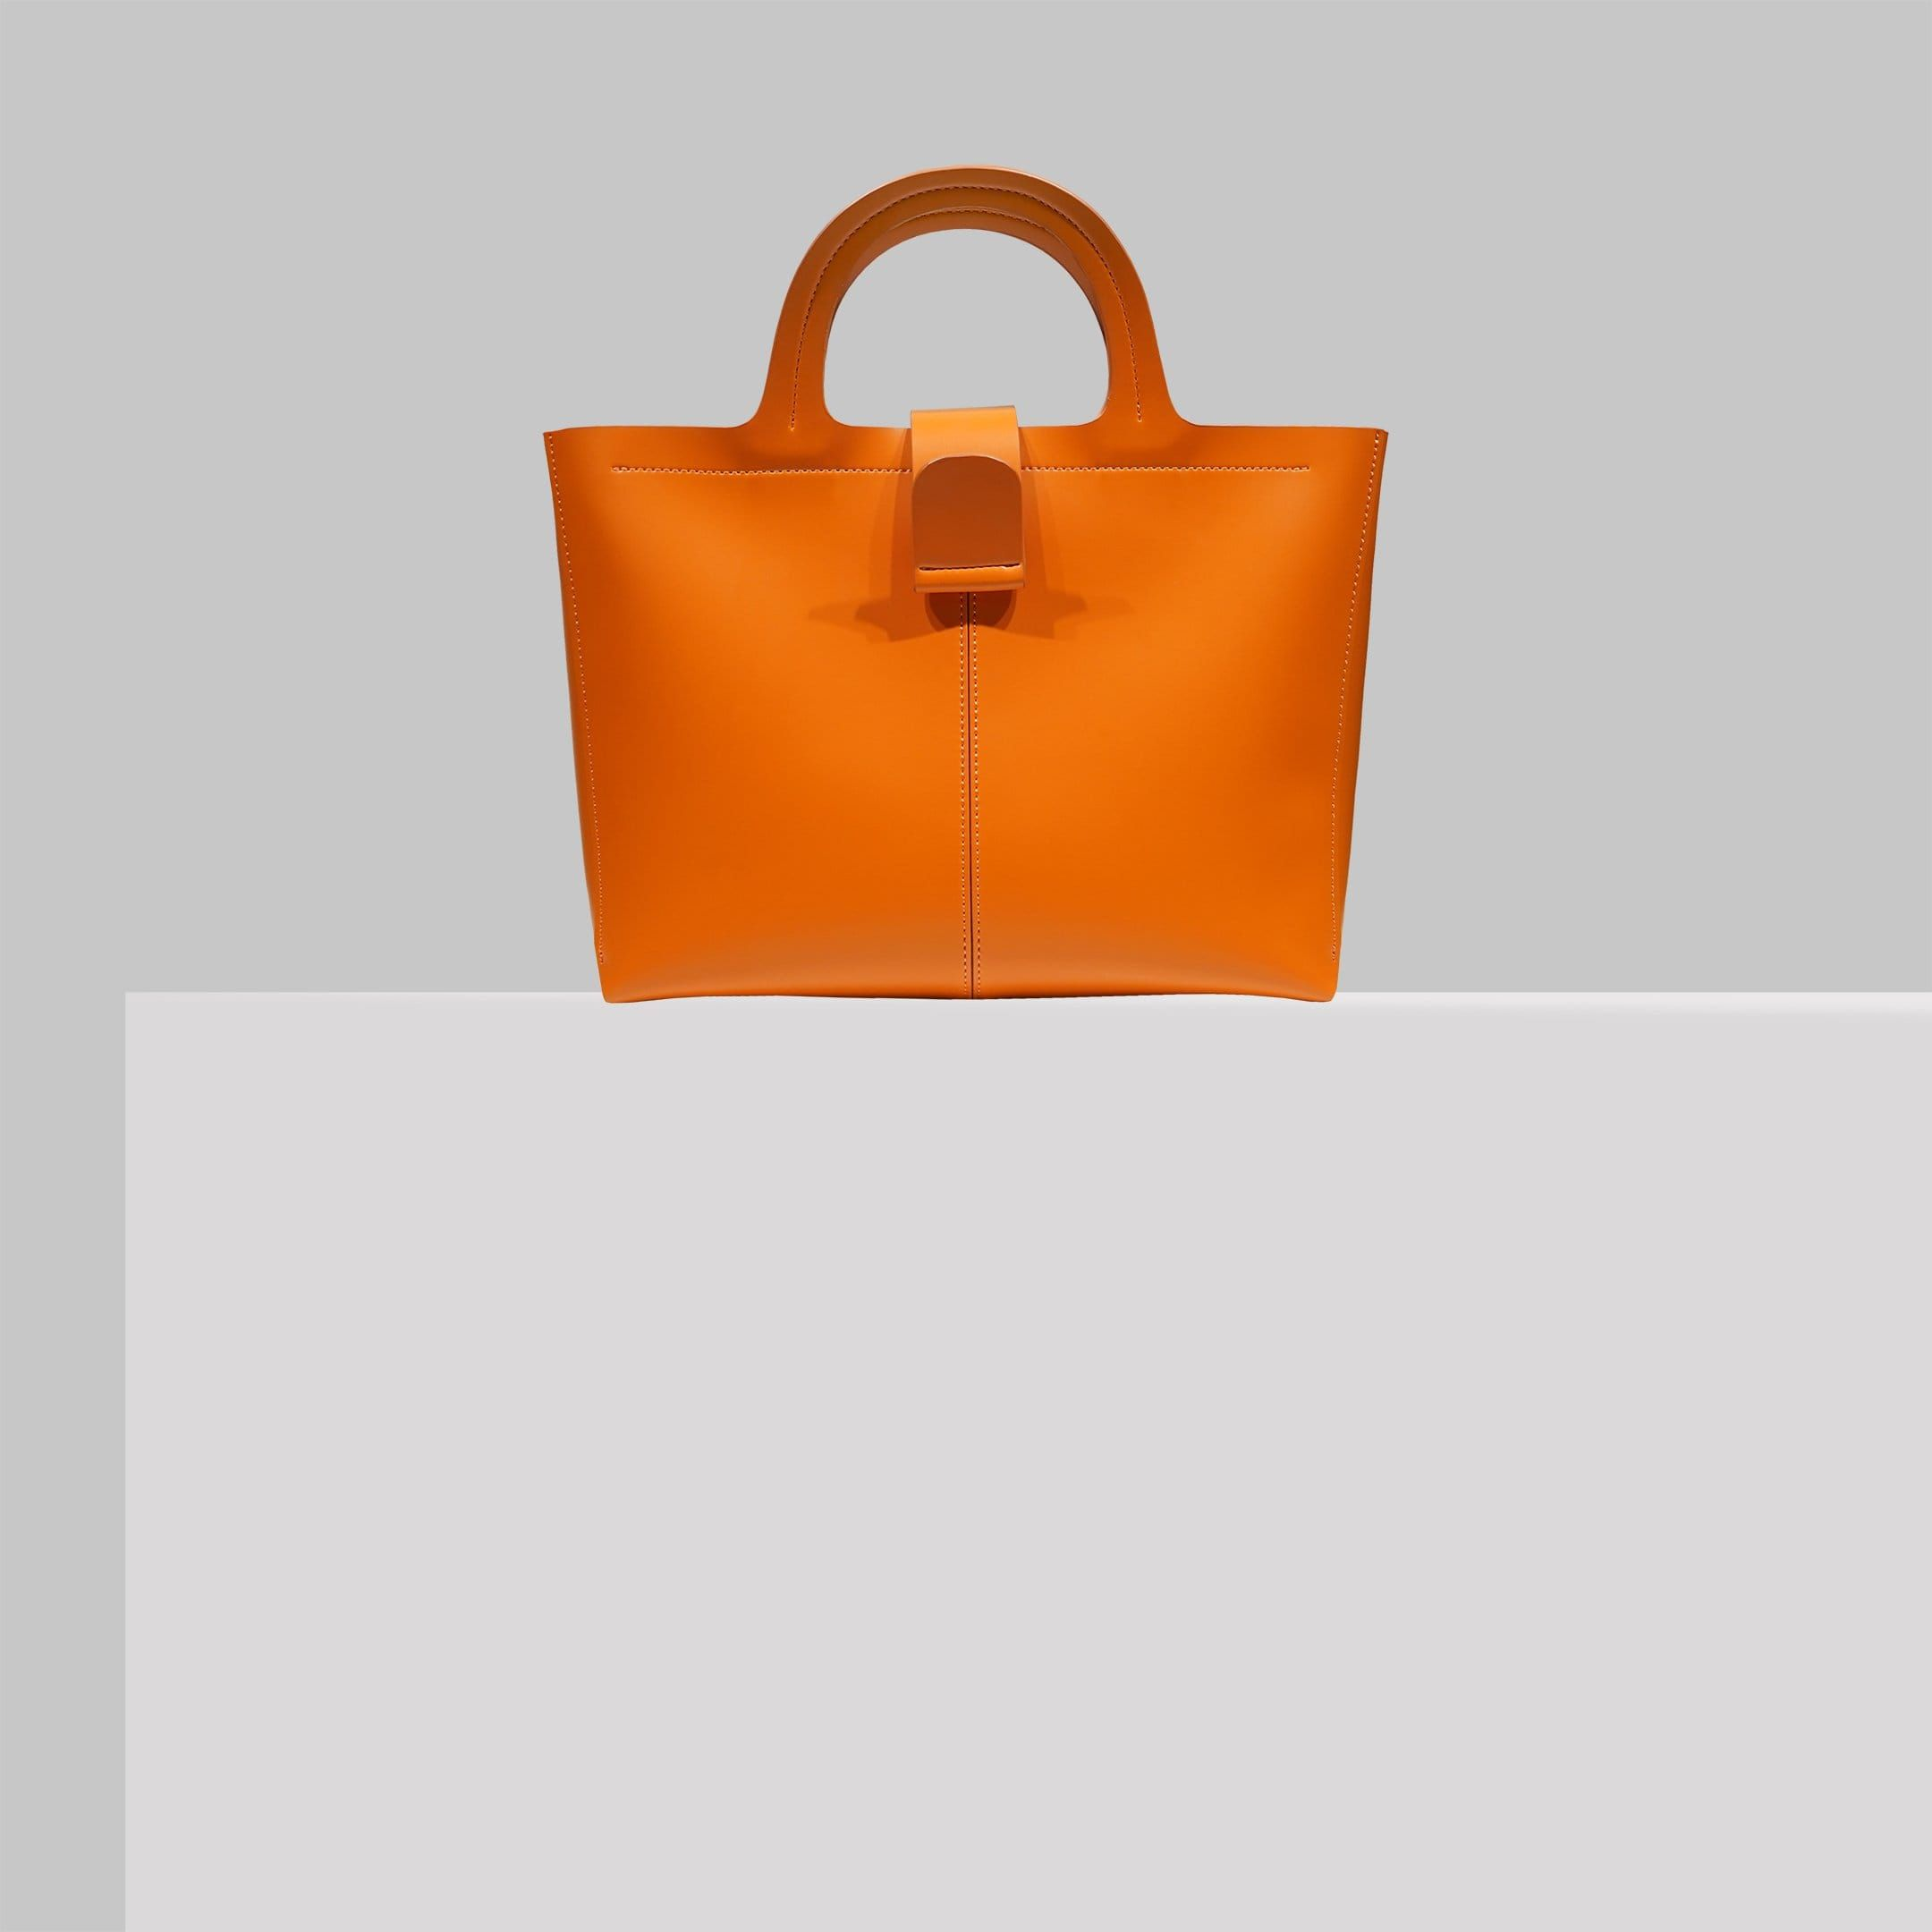 Expressions Nyc Sustainable Vegan Leather Bags On Renoon In 2020 Vegan Leather Bag Sustainable Accessories Sustainable Fashion